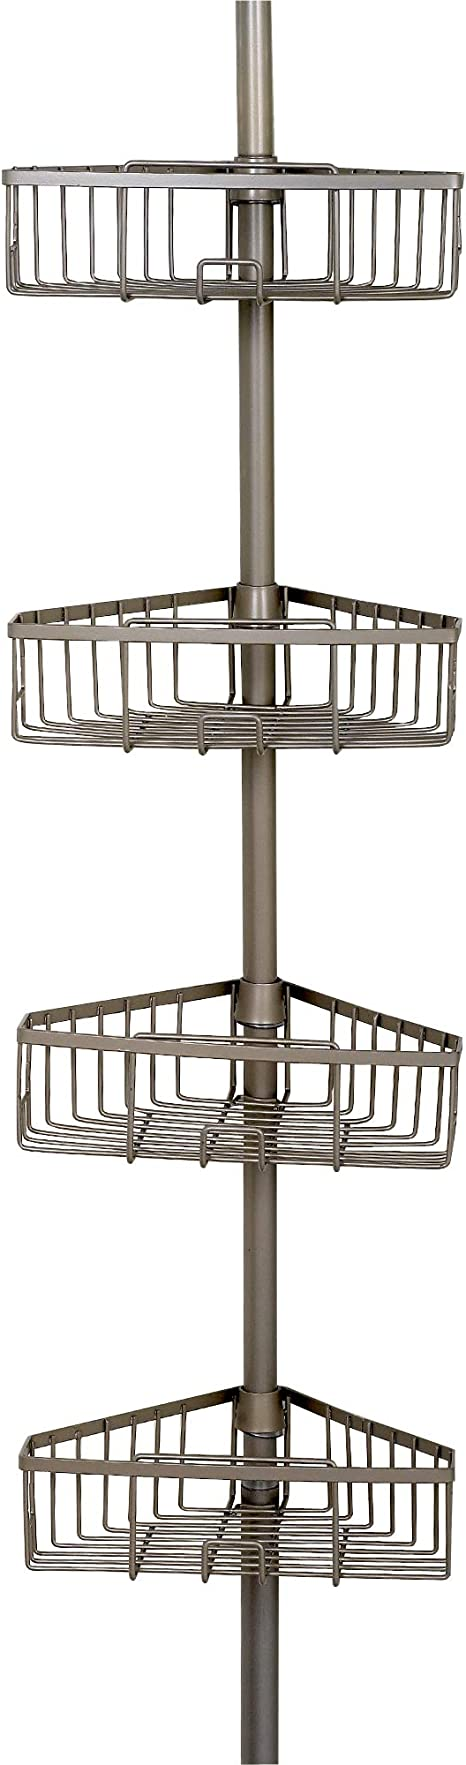 Satin Nickel Home Tension Pole Shower Caddy